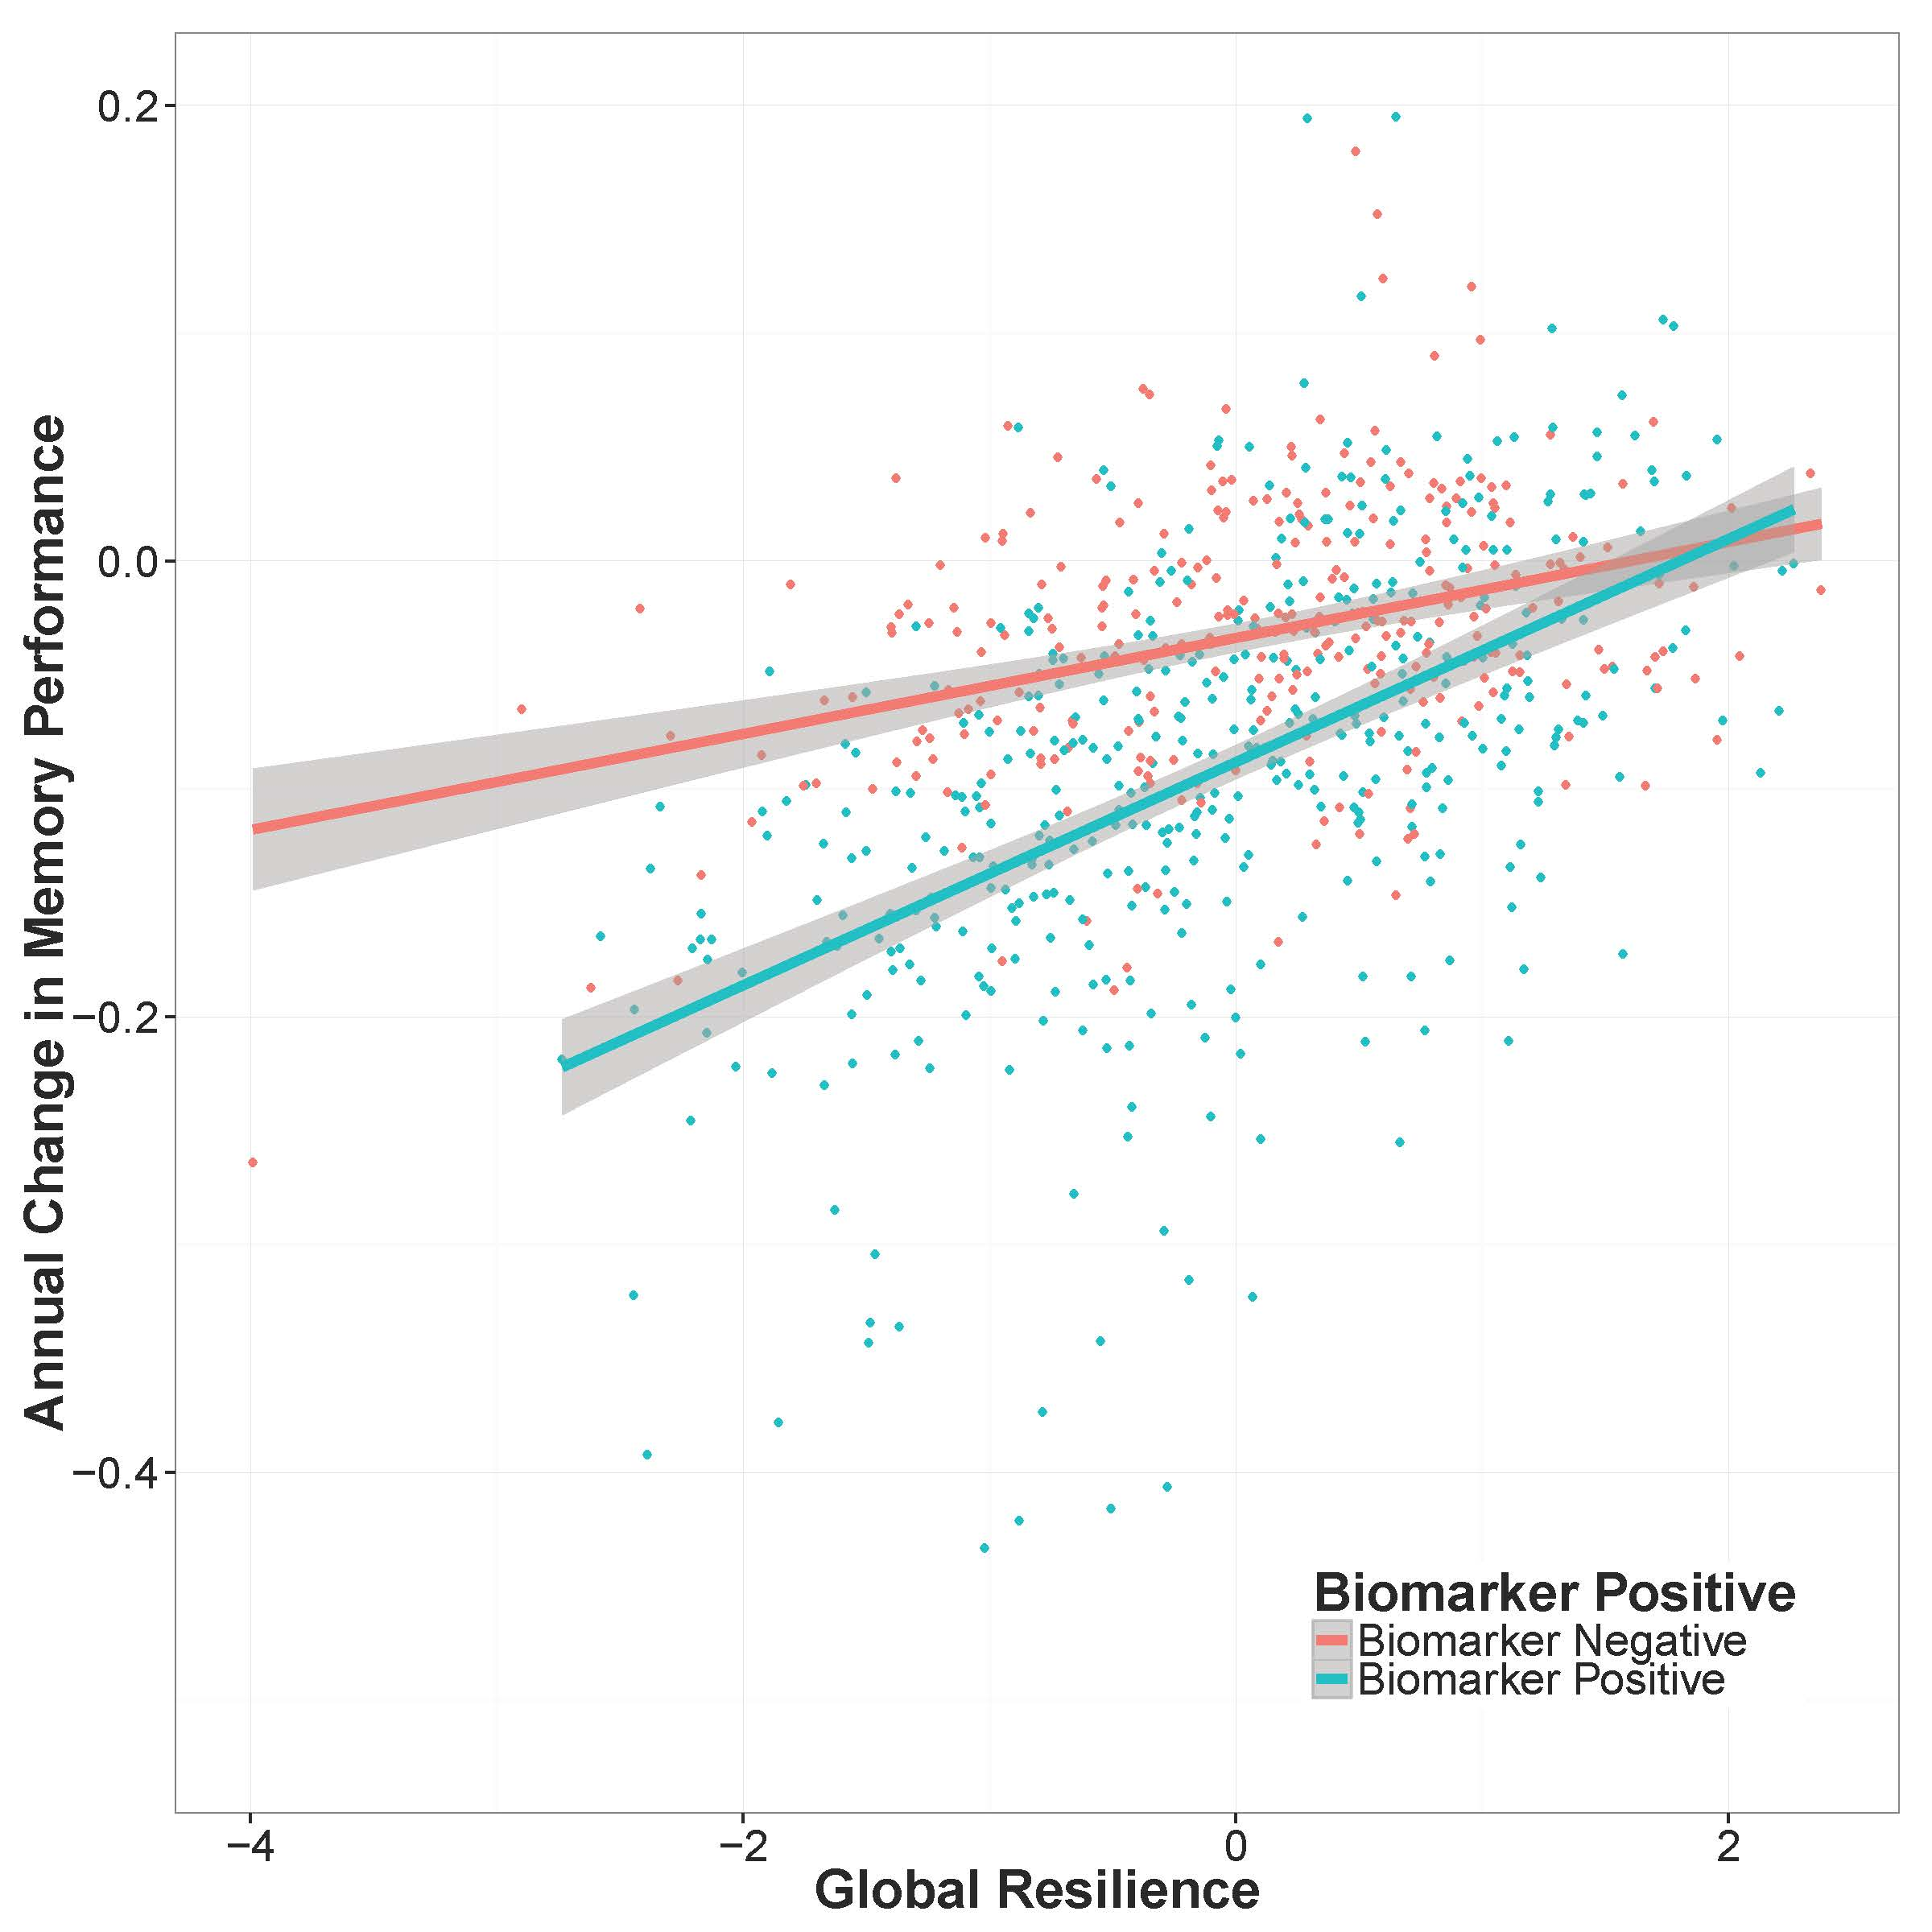 Figure_4_Global_Resilience_Biomarker_Interaction.jpg